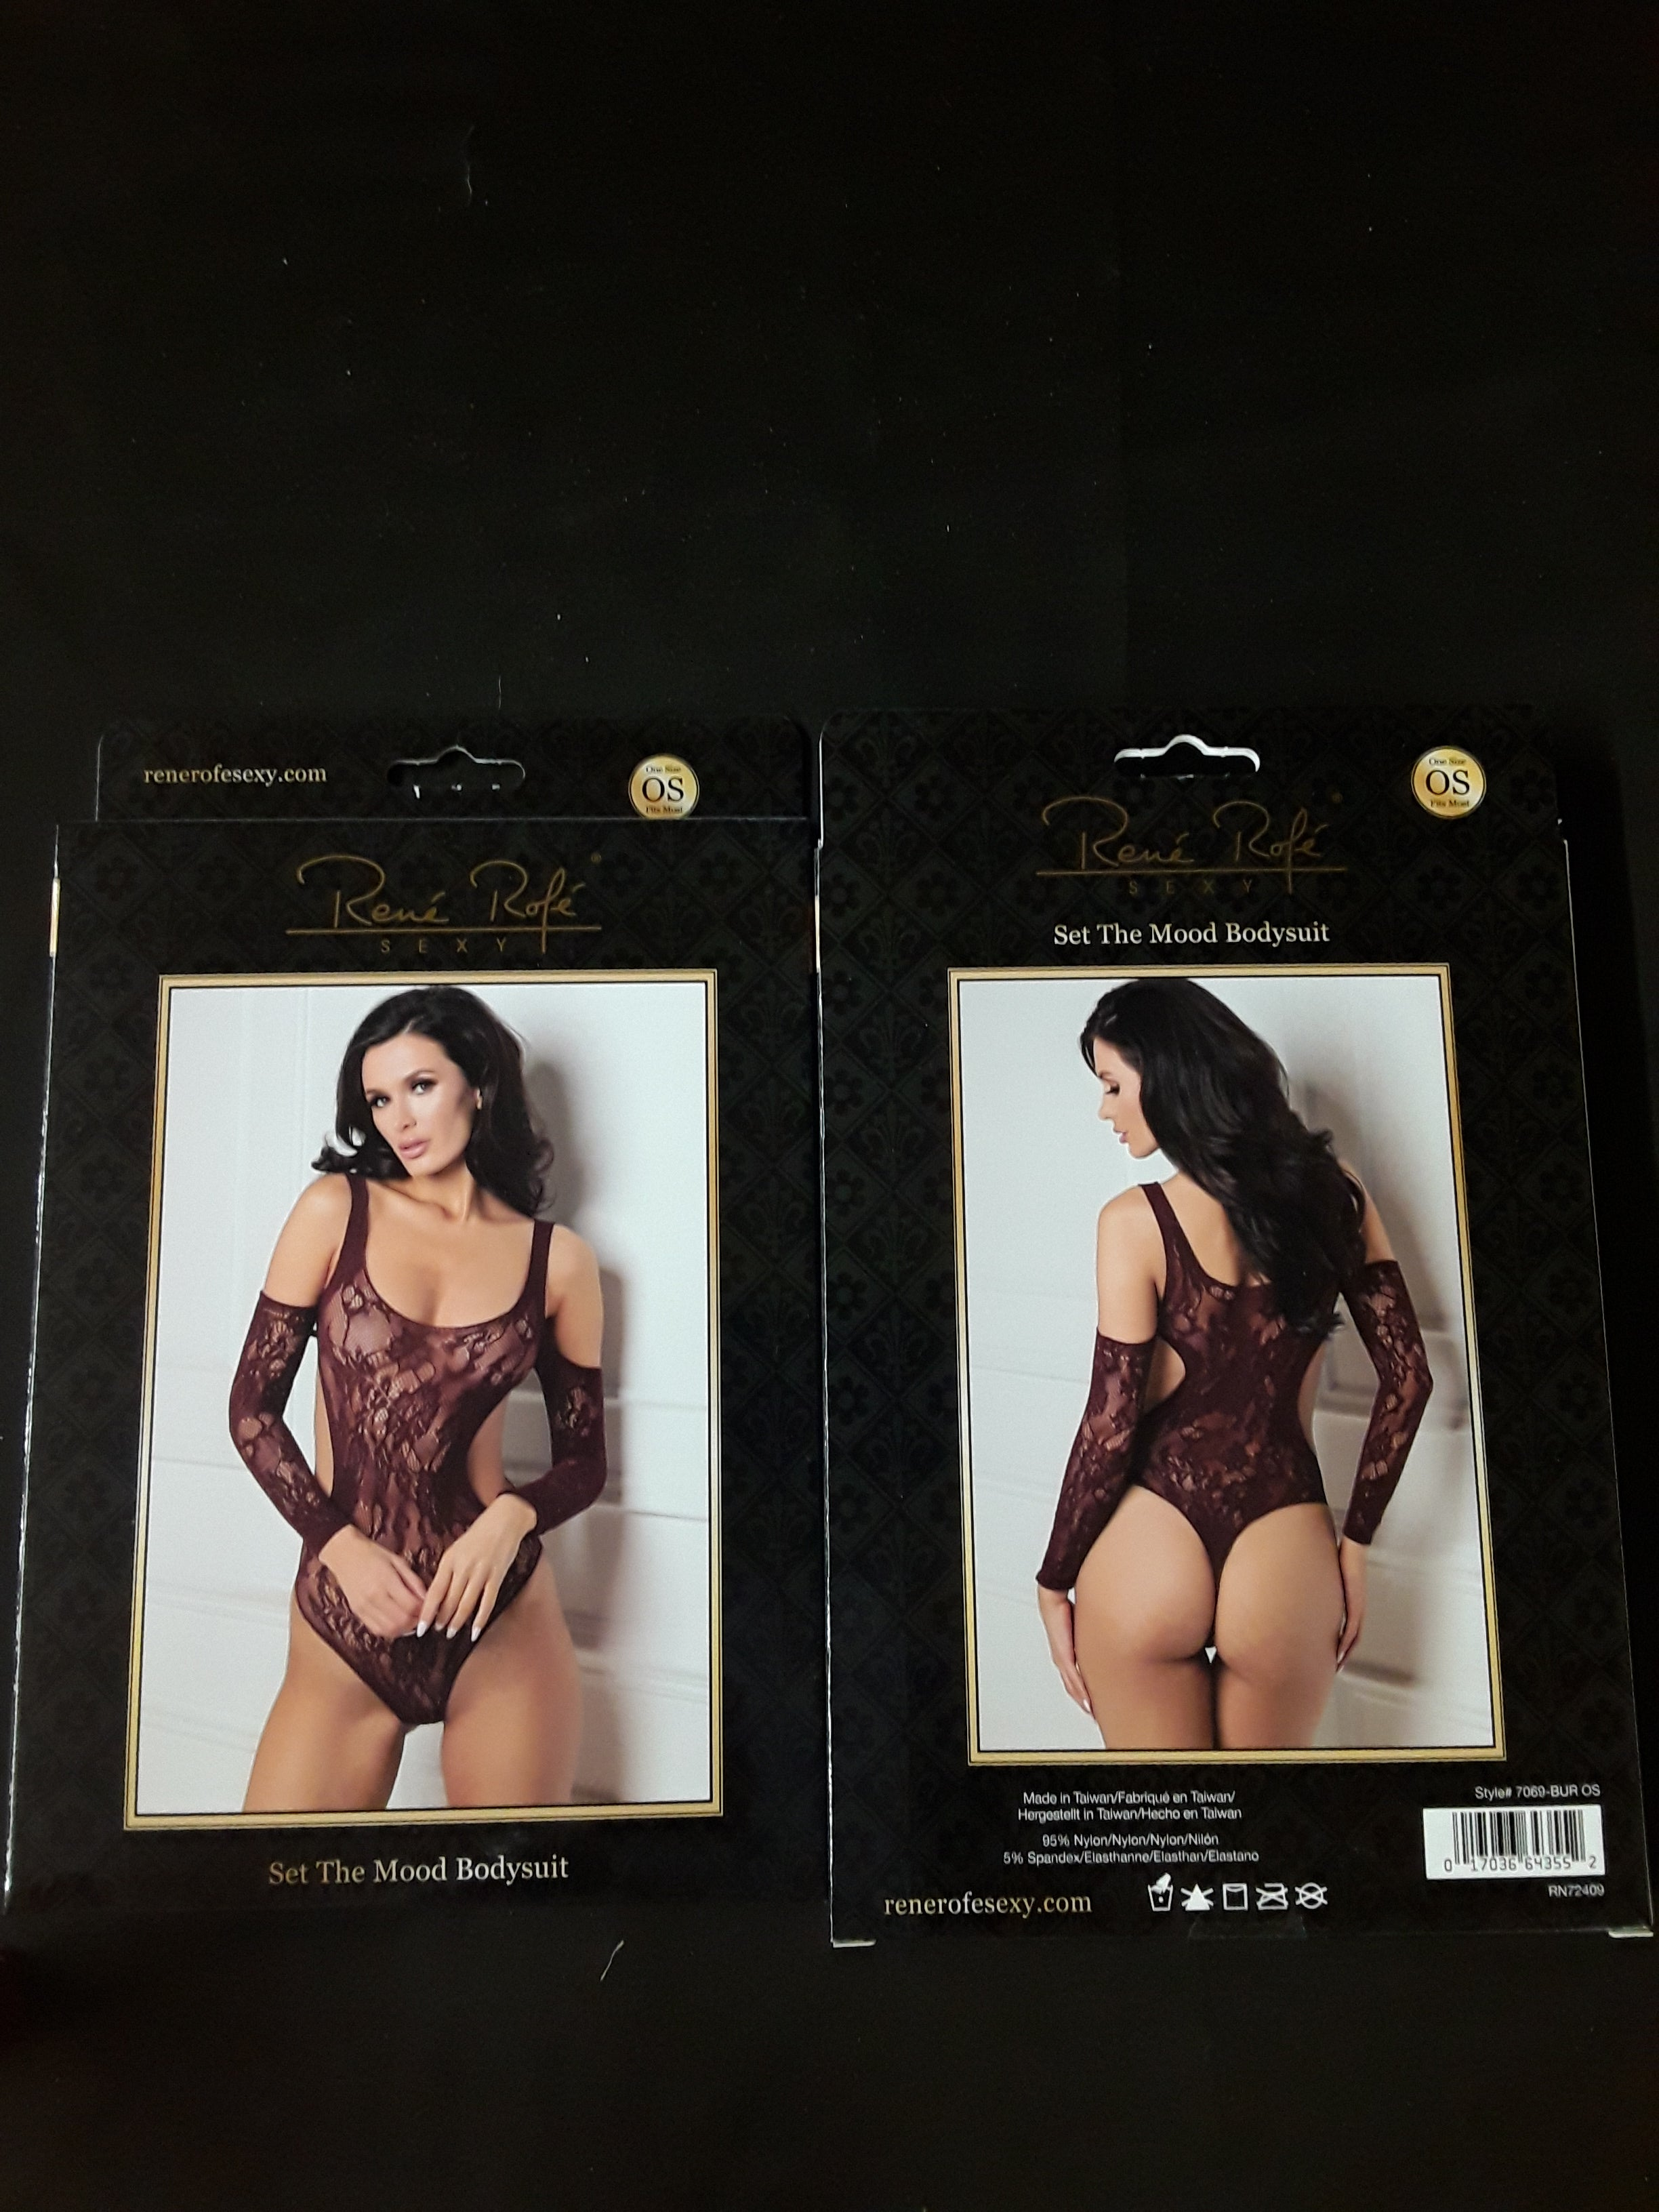 Rene Rof Sexy Set The Mood Bodysuit